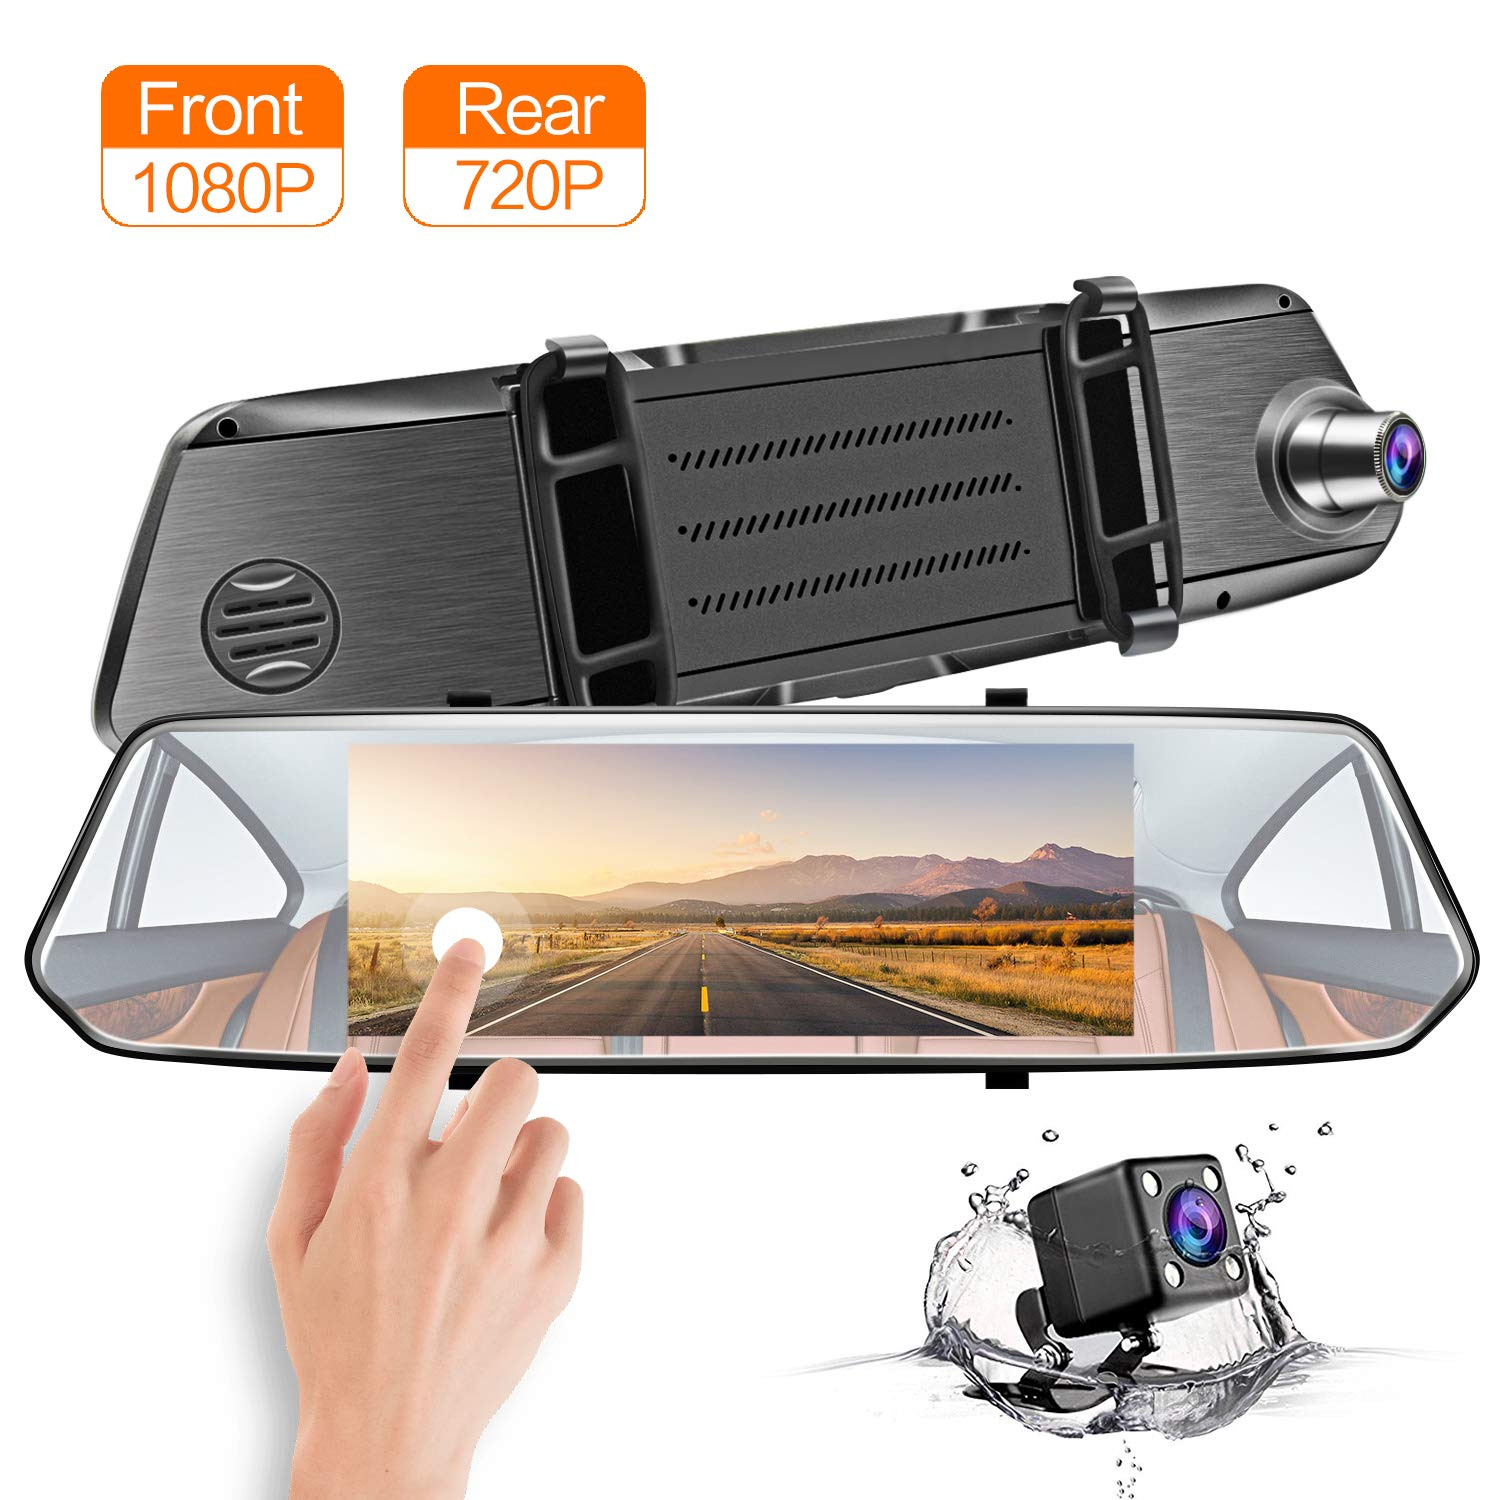 CHICOM Mirror Dash Cam, Dashboard Camera Recorder 7' LCD Full HD 1080P IPS Touch Screen Dual Lens Front Rear View Car Video Recorder with G Sensor, Parking Monitor, Loop Recording (1080P)